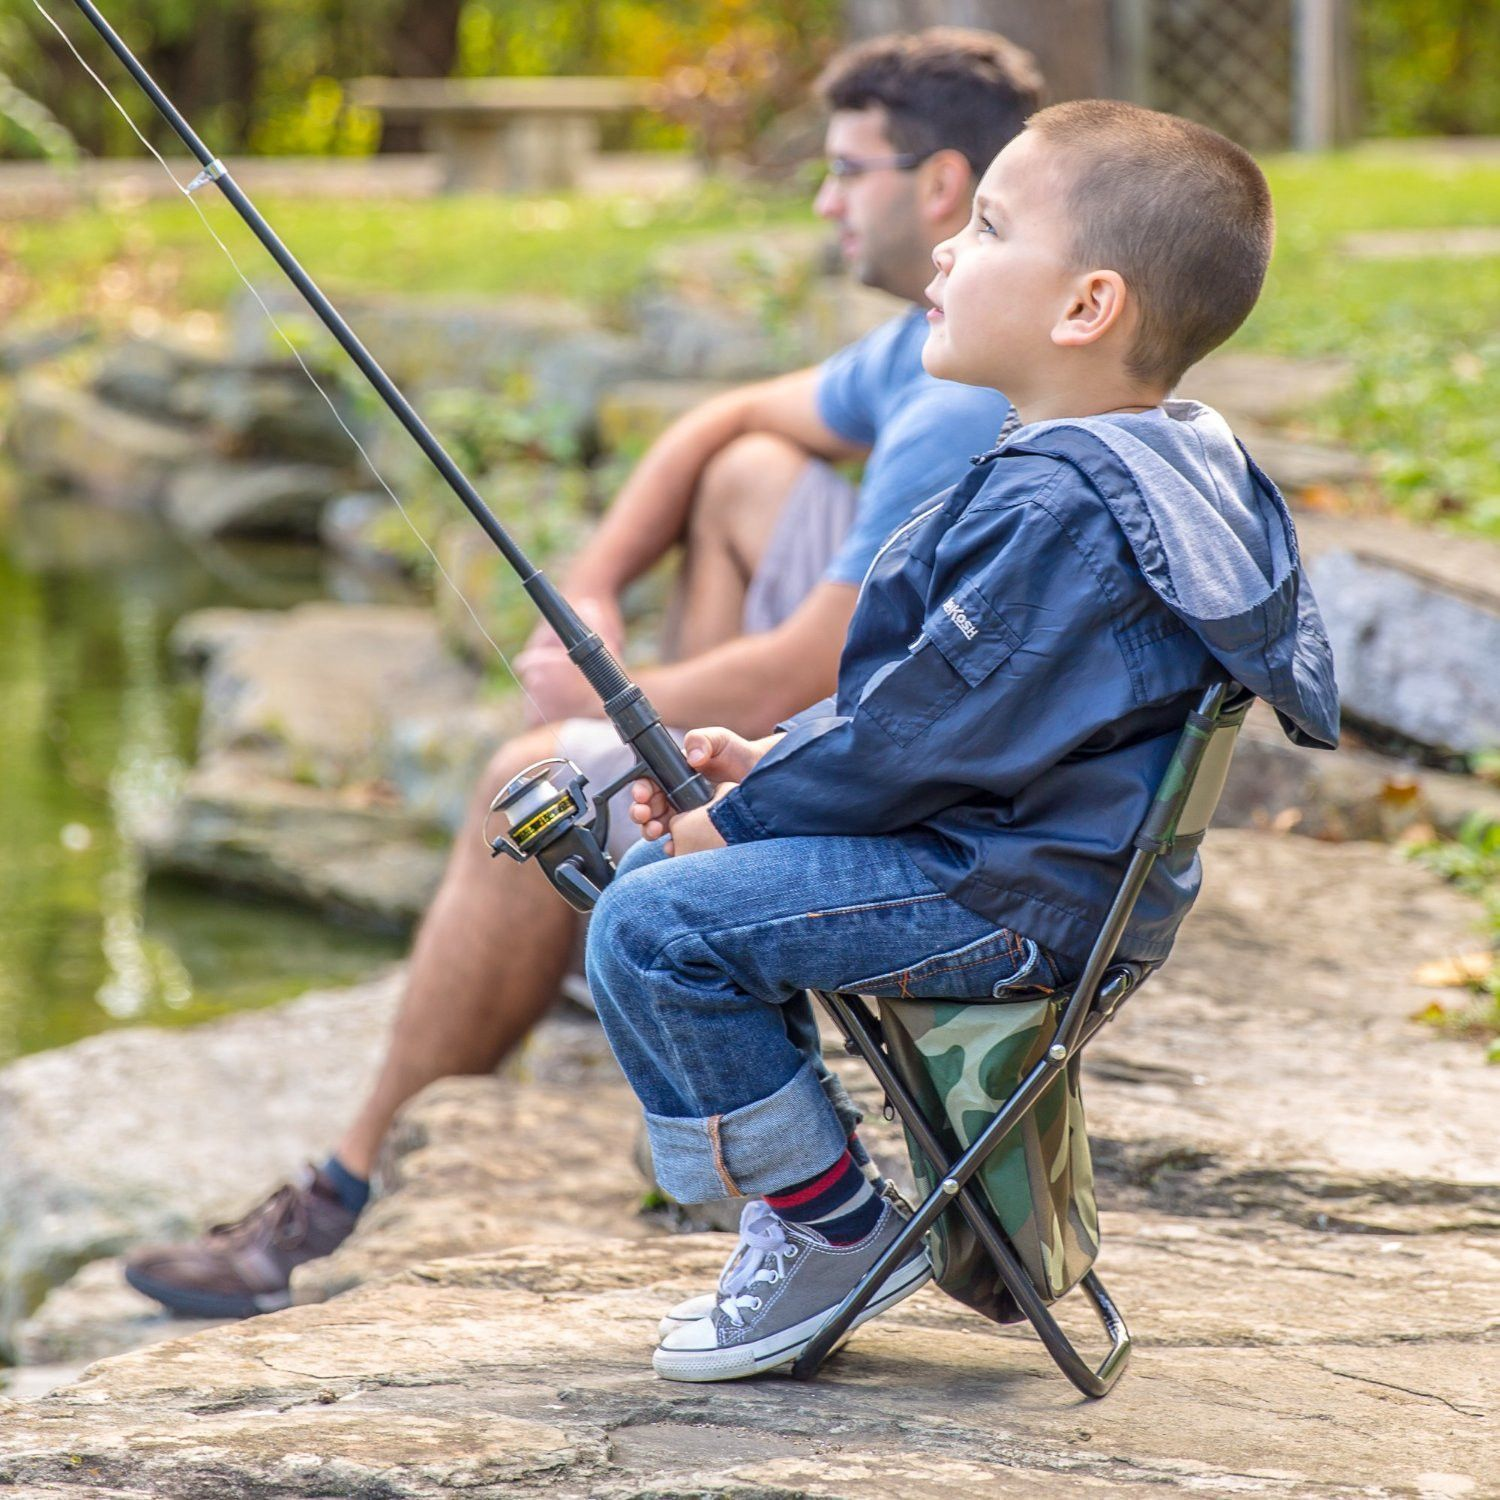 Fishing gear plus new and improved for kids telescoping